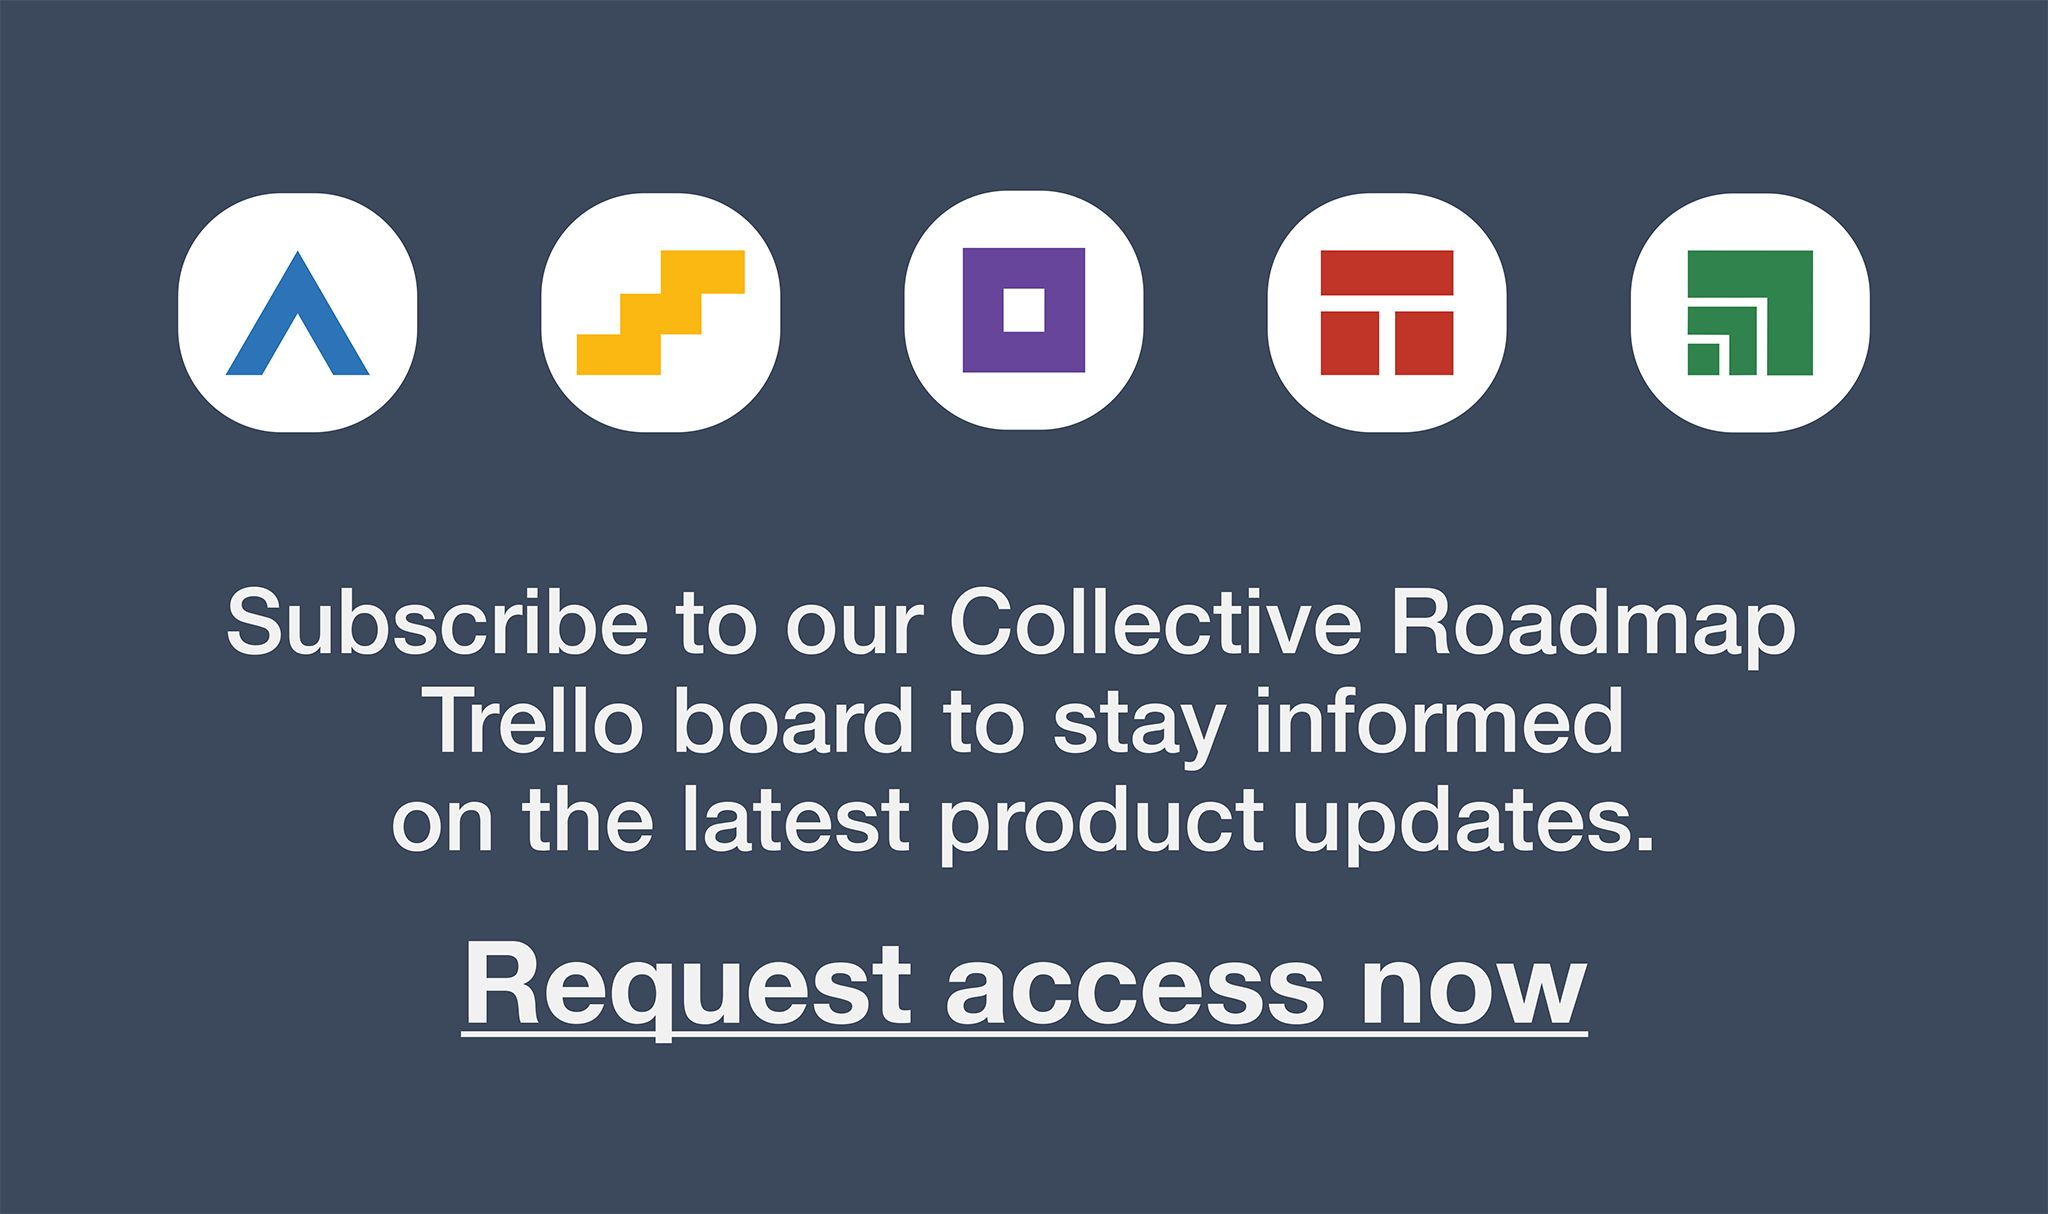 Request access to our Collective Roadmap Trello boards.